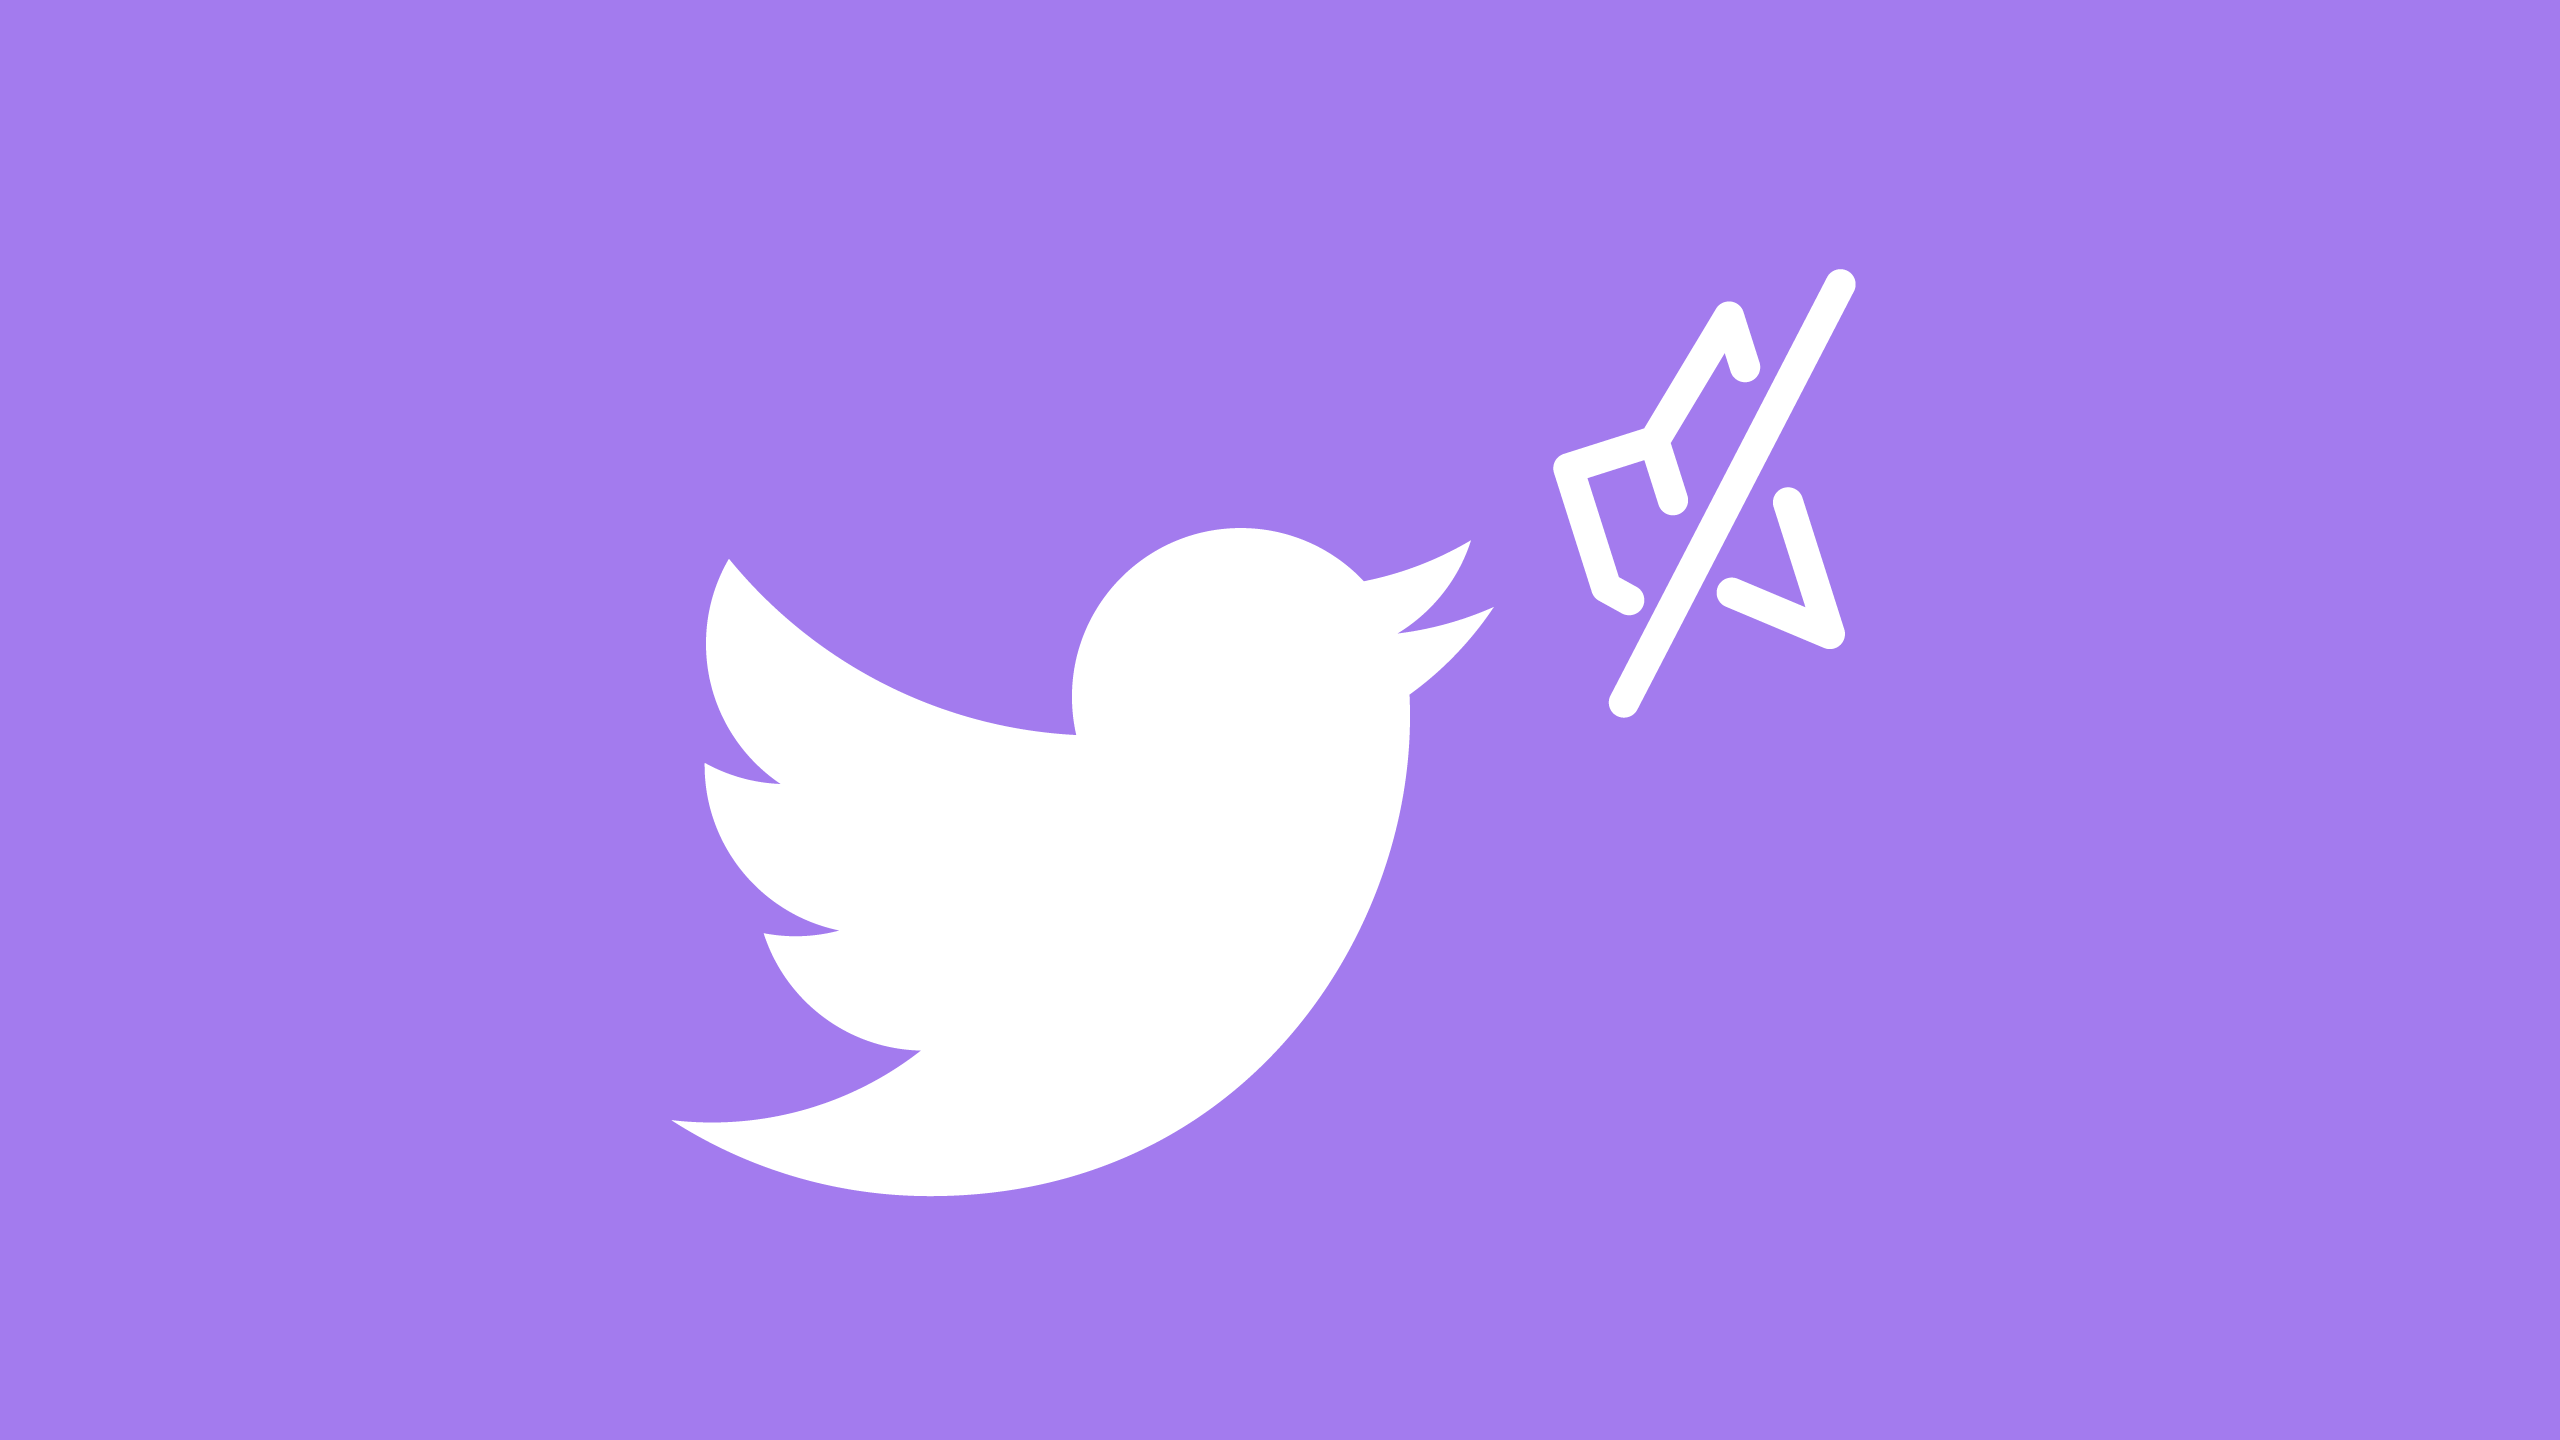 Twitter is done with hate symbols and violent groups techcrunch biocorpaavc Images